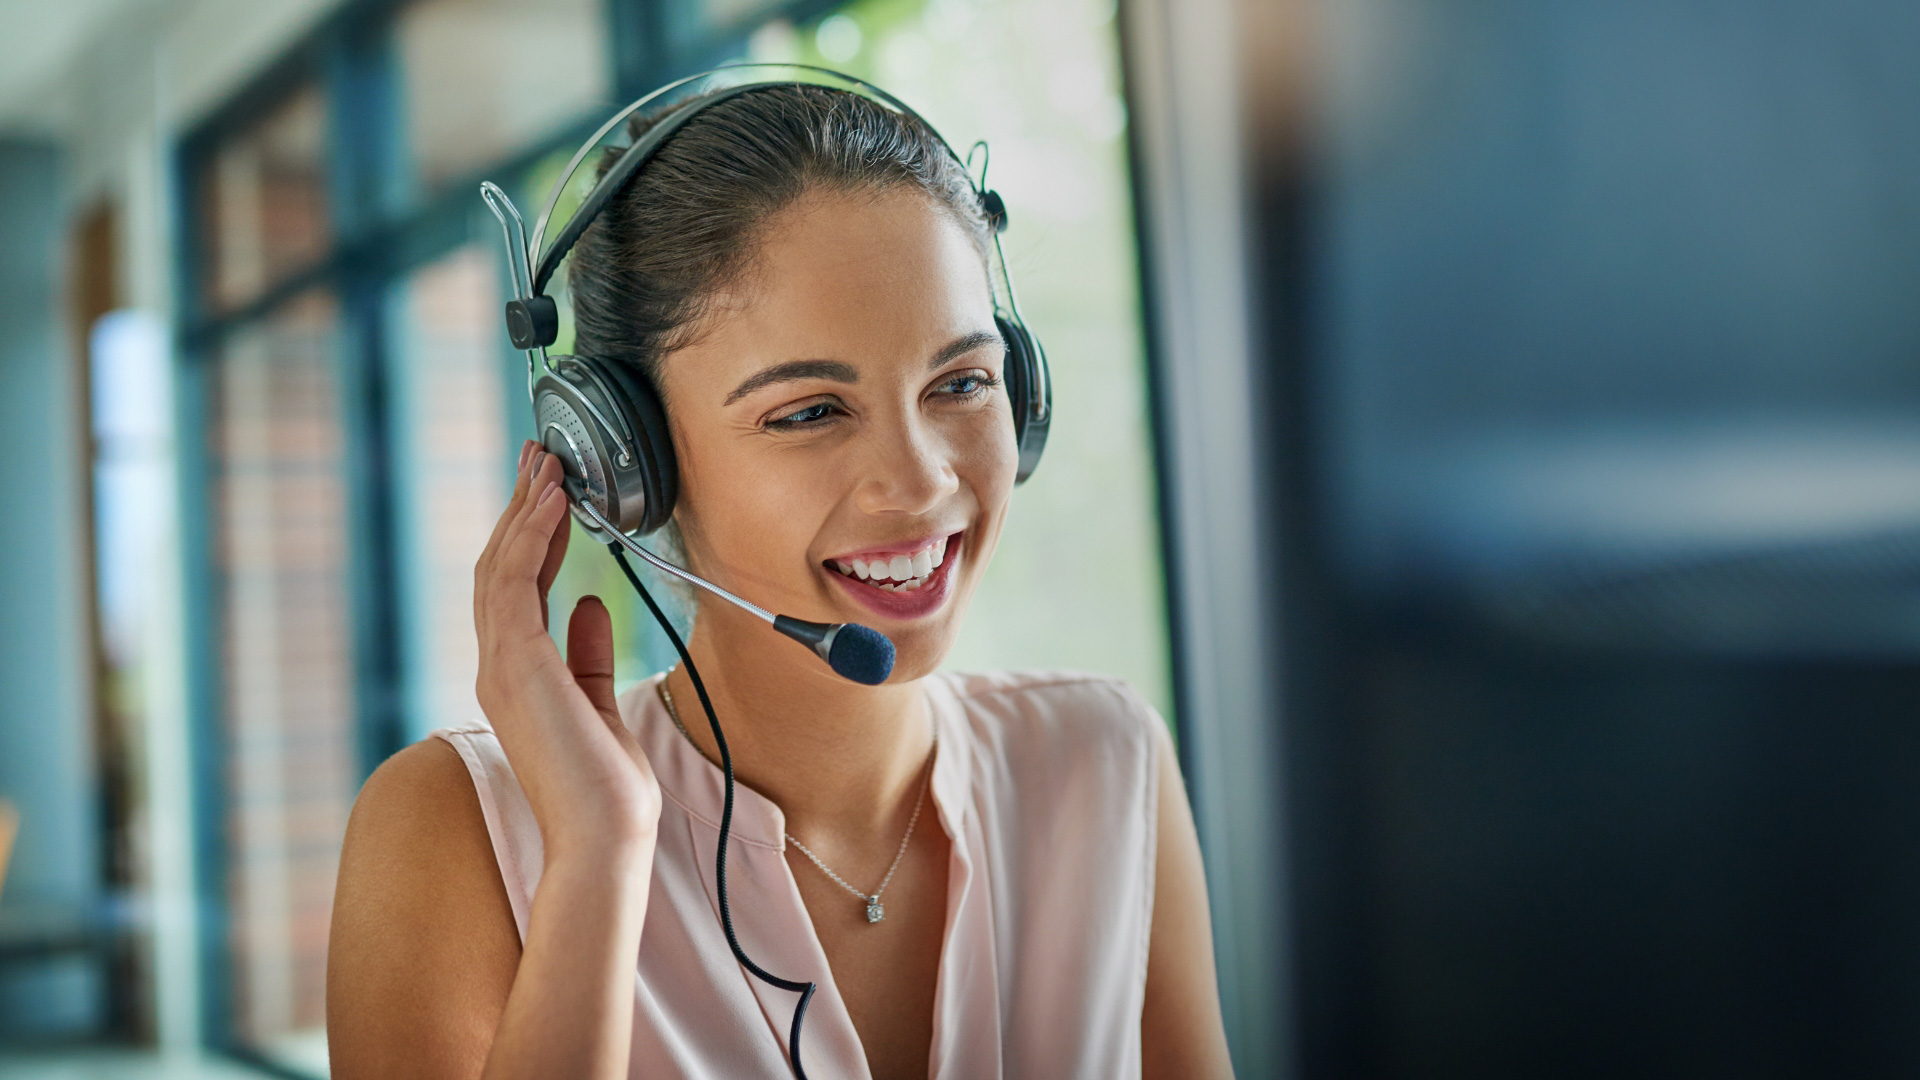 Customer Support specialist, casino games, Build A Career in iGaming Industry